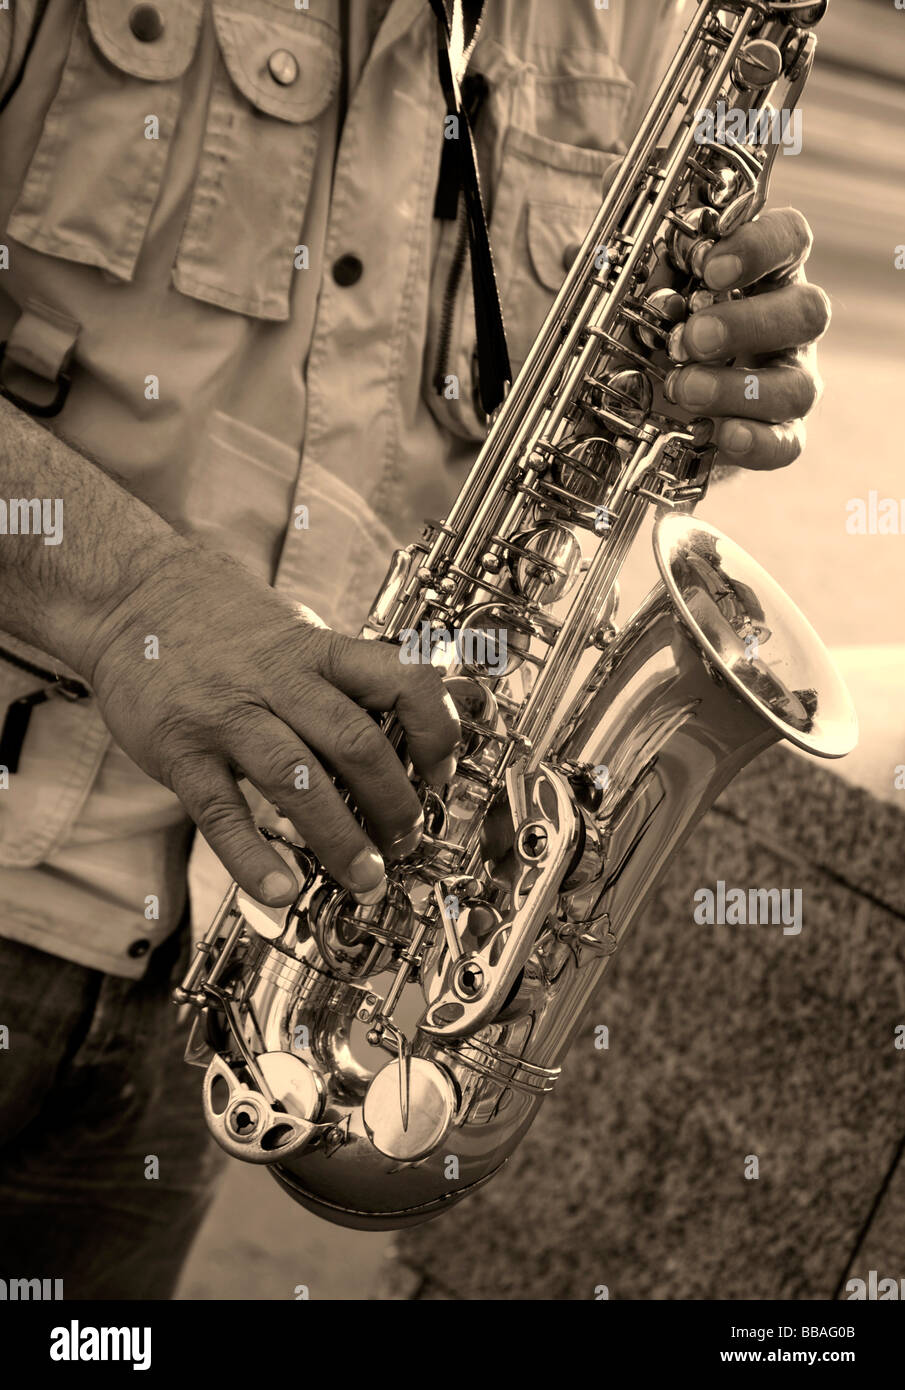 hands of saxophone player - Stock Image